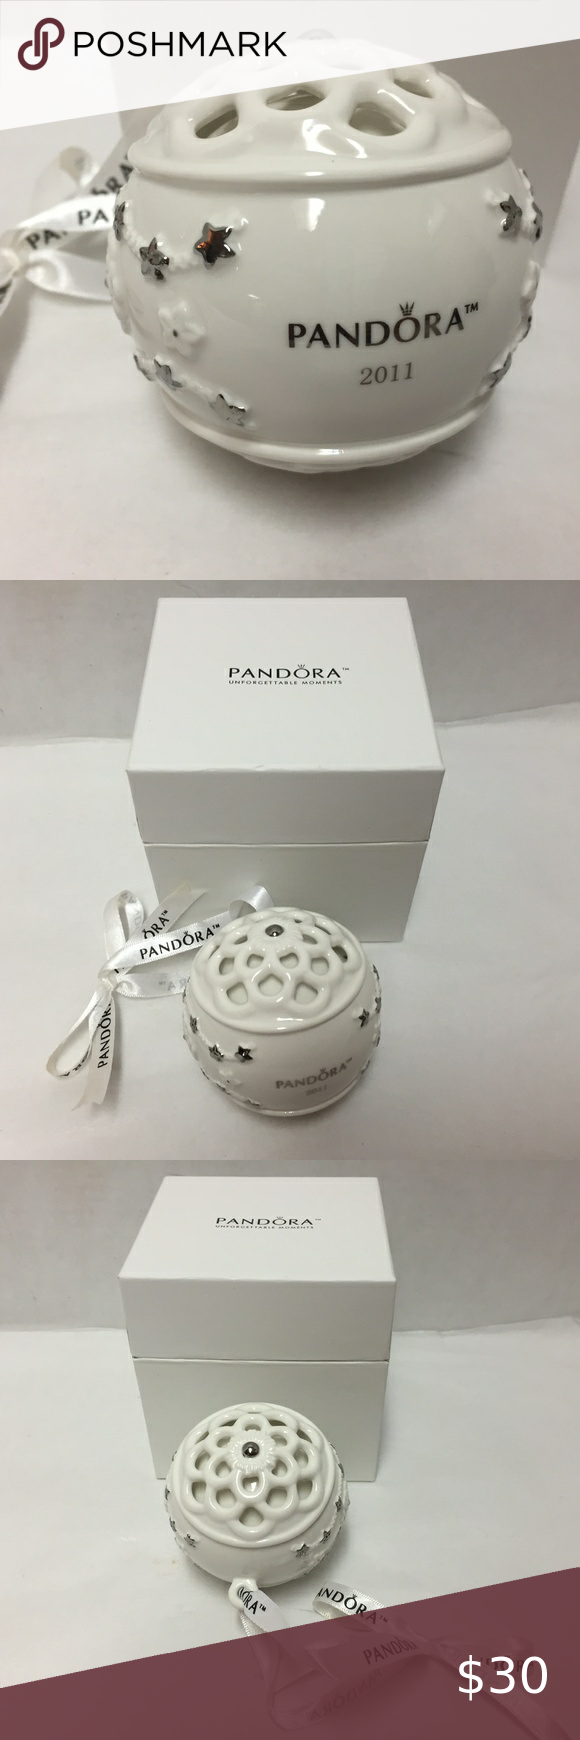 2020 Pandora Christmas Ornament Pandora Christmas Ornament 2011 in 2020 | Pandora christmas